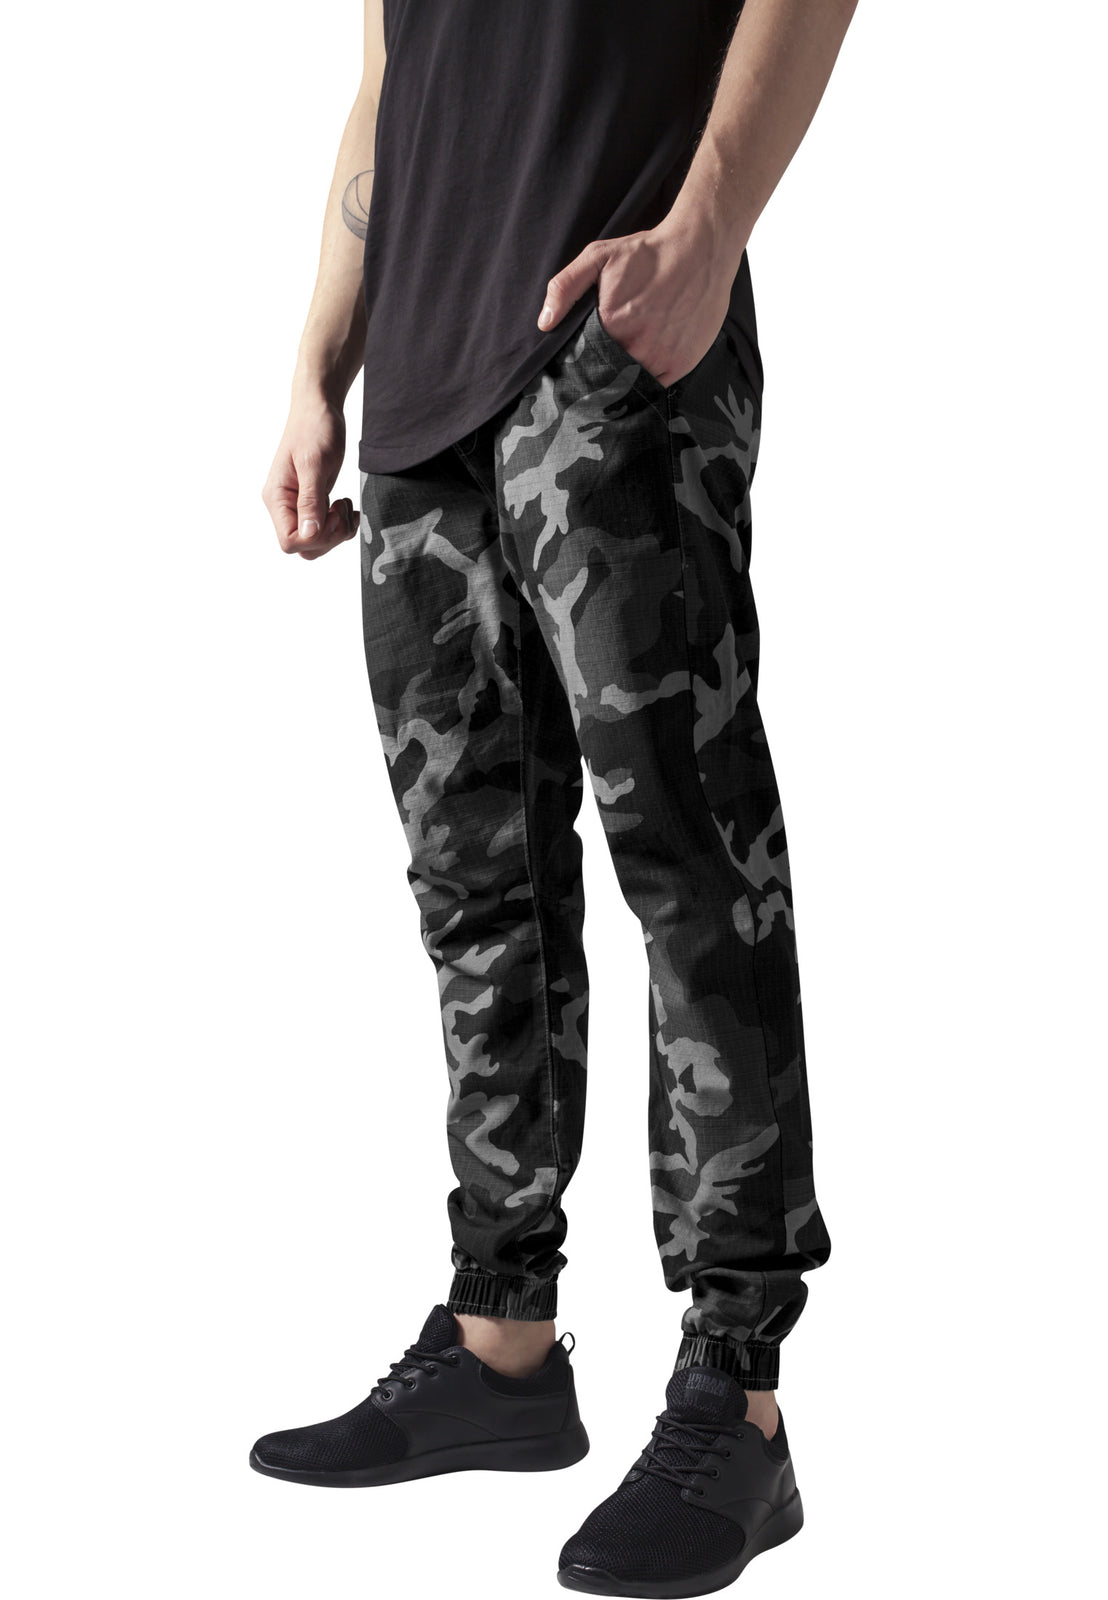 Camo Ripstop Jogging Pants darkcamo